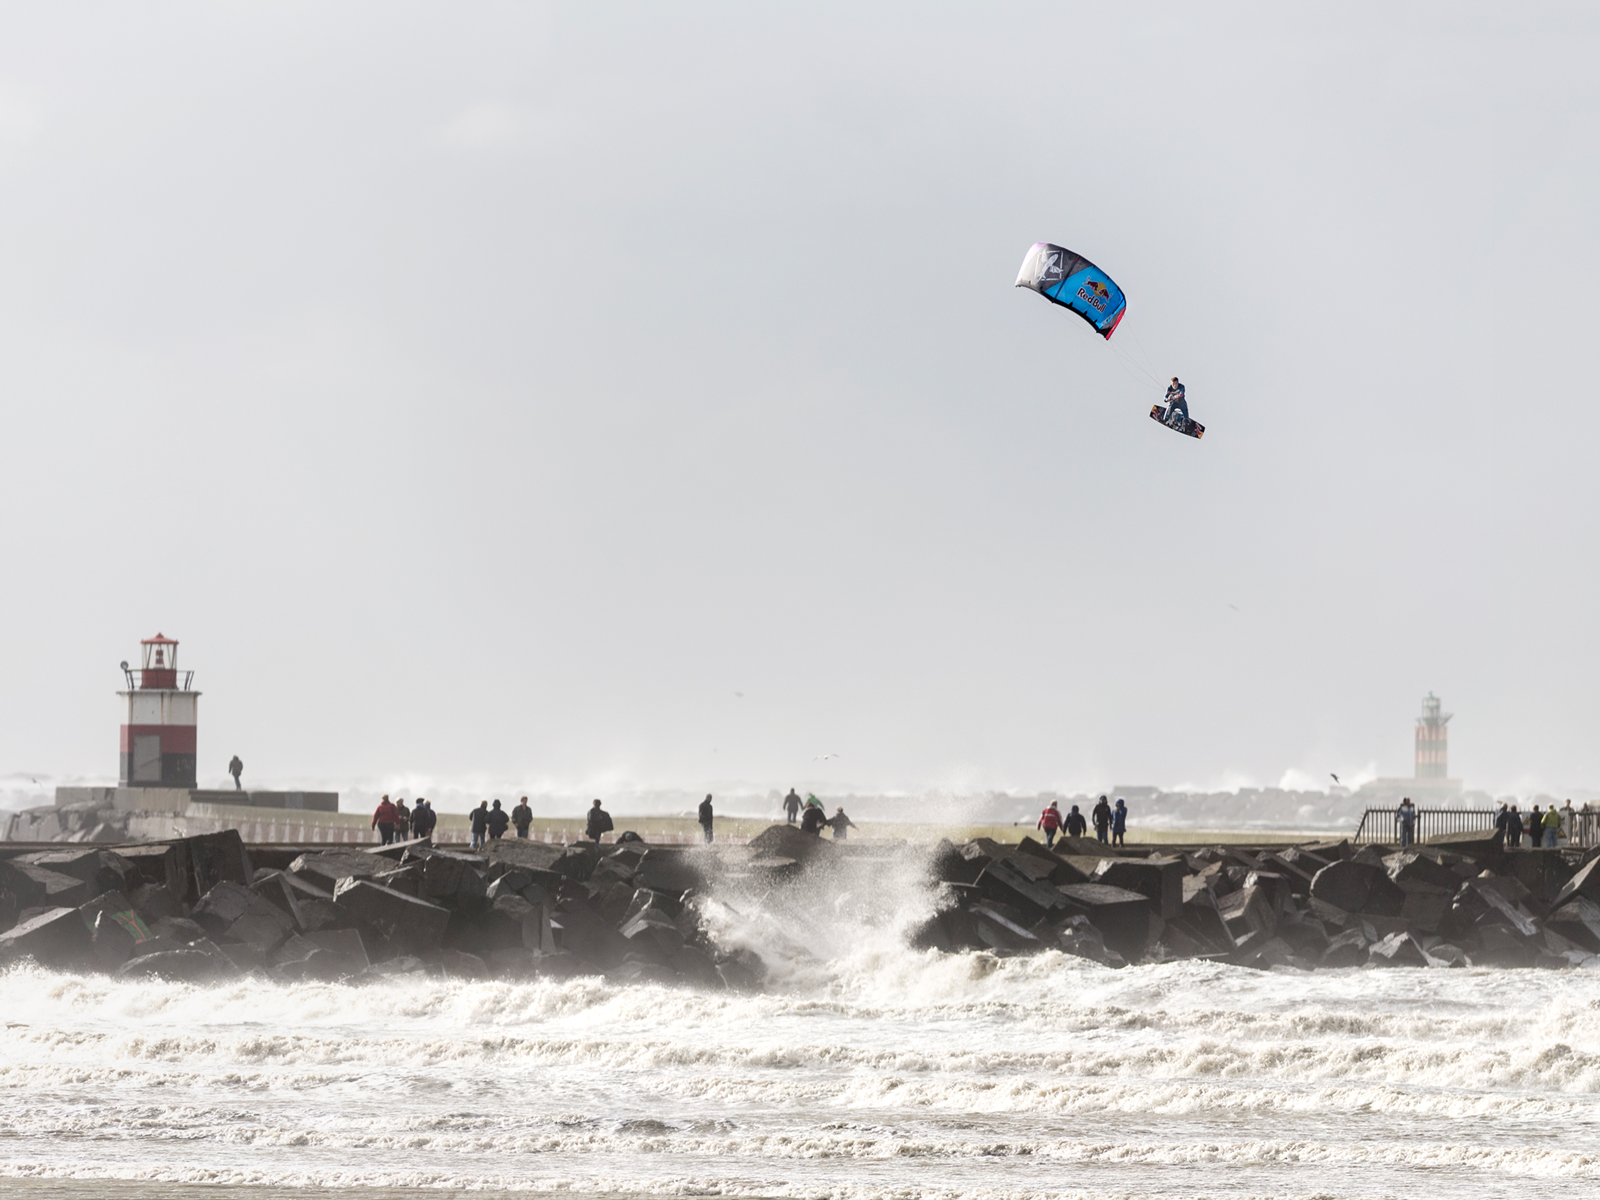 kitesurf wallpaper image - Ruben Lenten stormchasing at Wijk aan Zee megaloop - in resolution: Standard 4:3 1600 X 1200